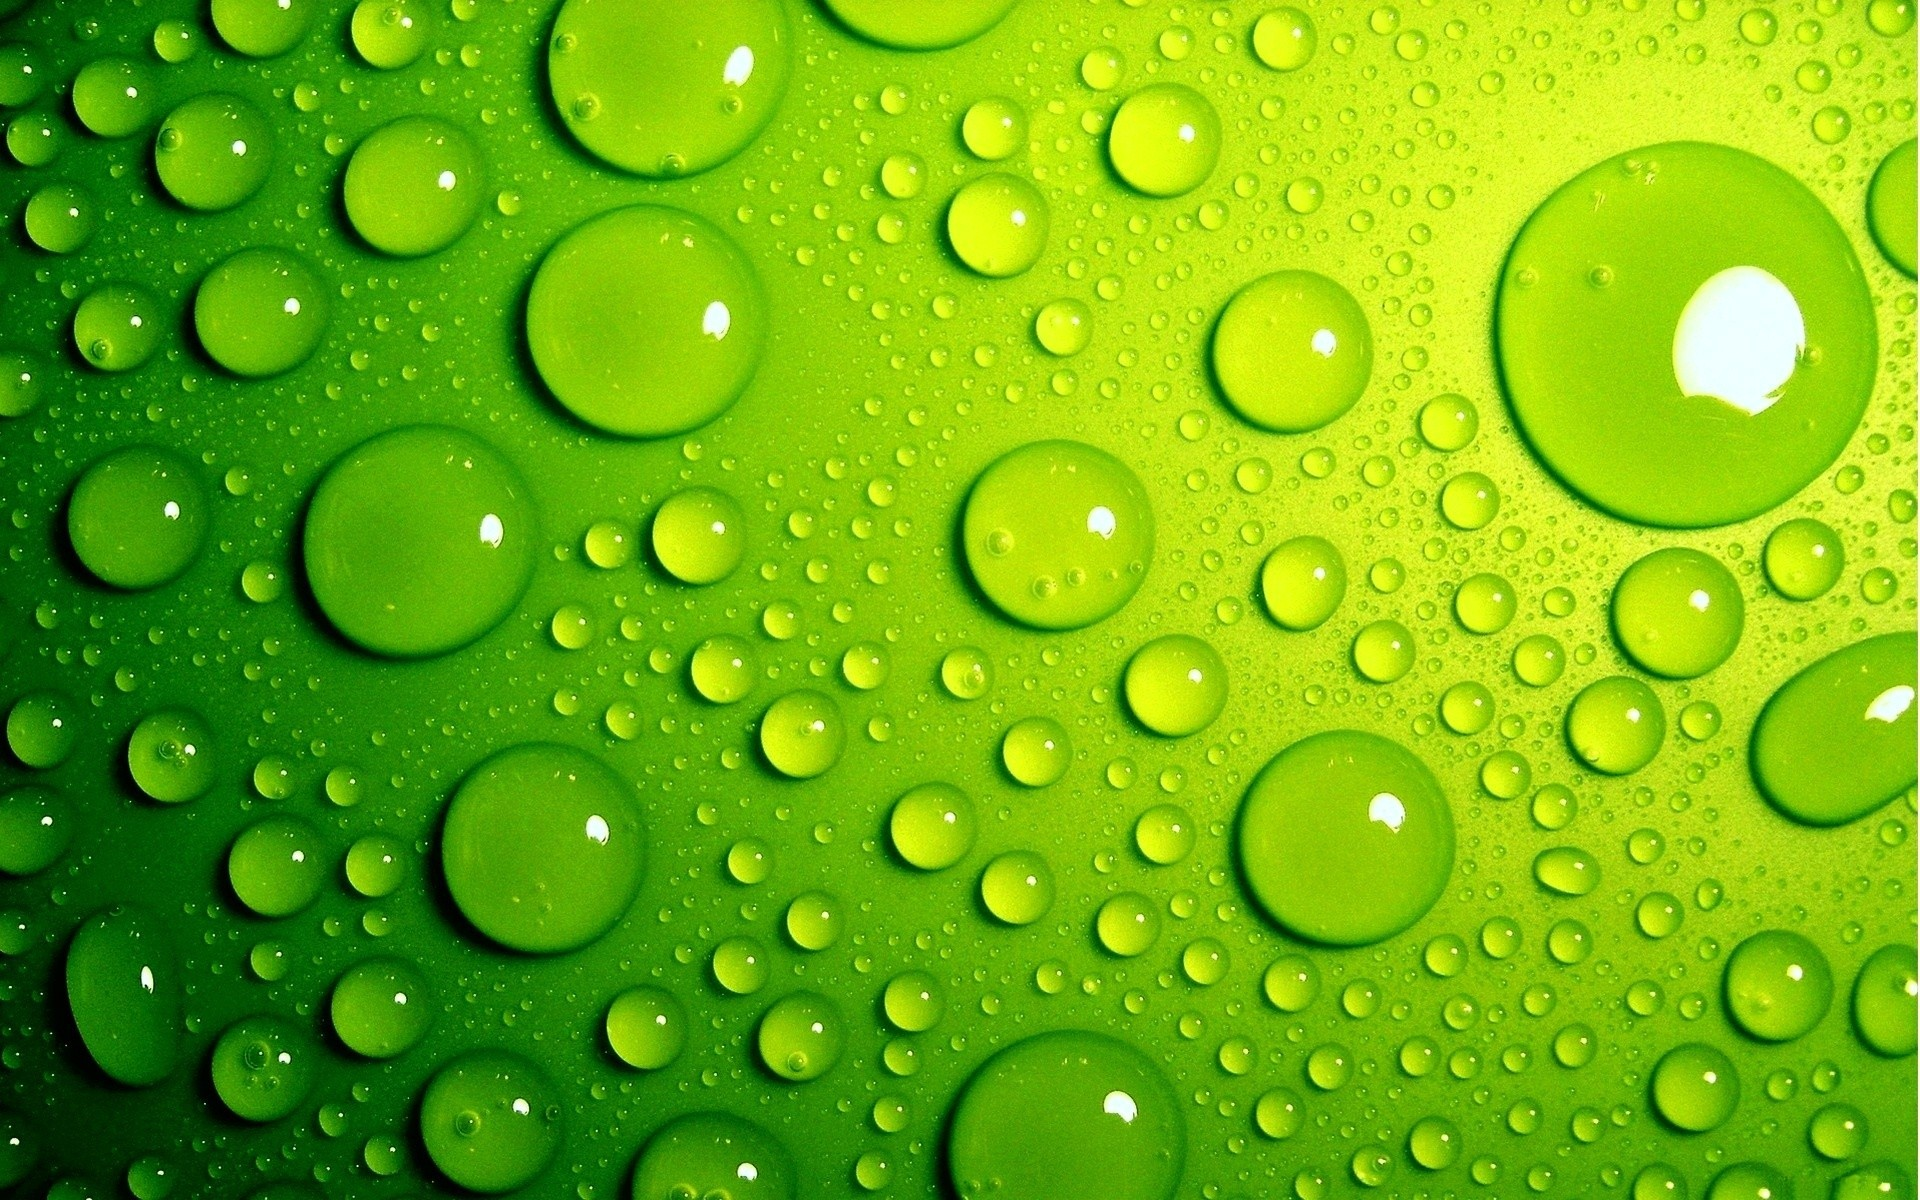 Fresh Green Backgrounds Wallpaper